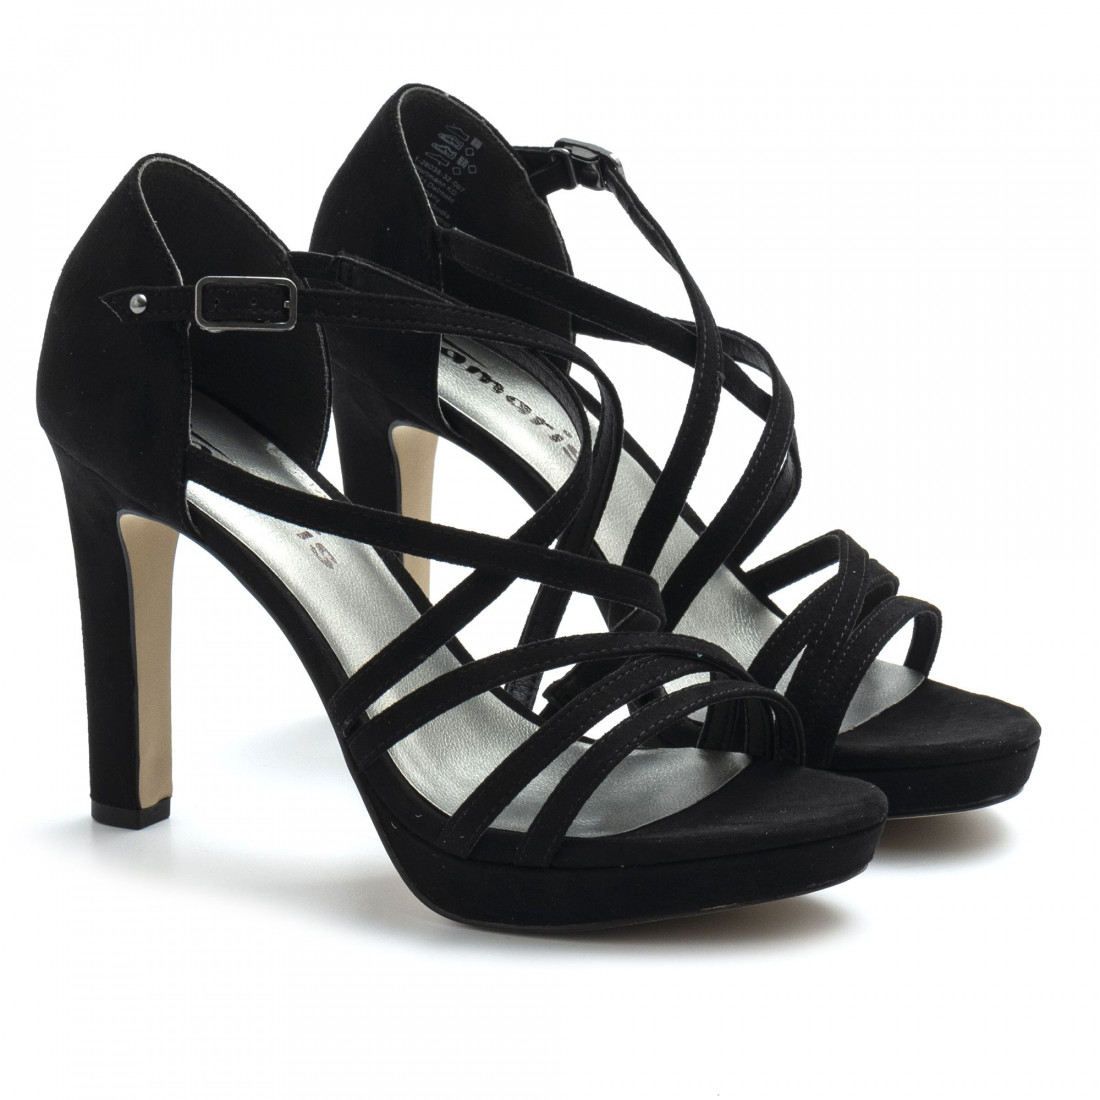 Black suede Tamaris sandals with high heel